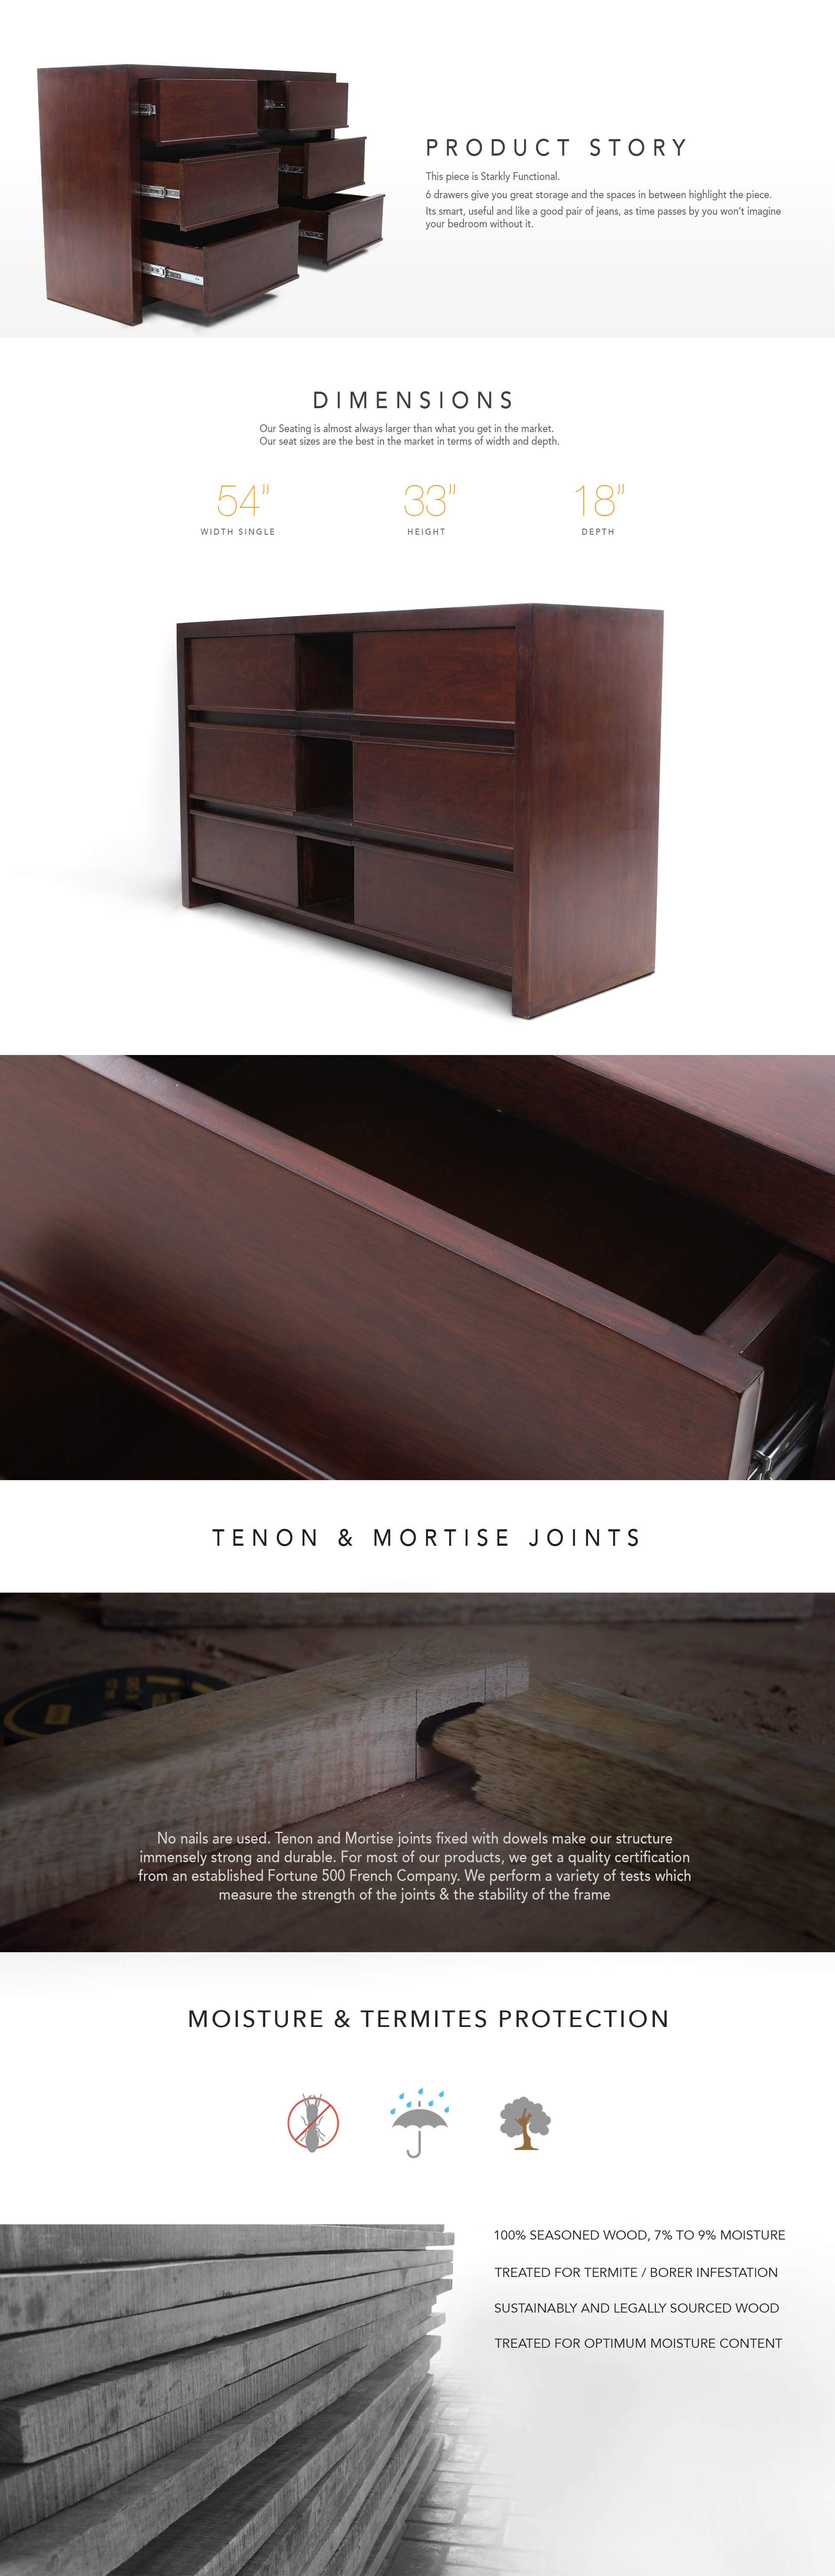 Counter Culture Six Chest of Drawer Product Story